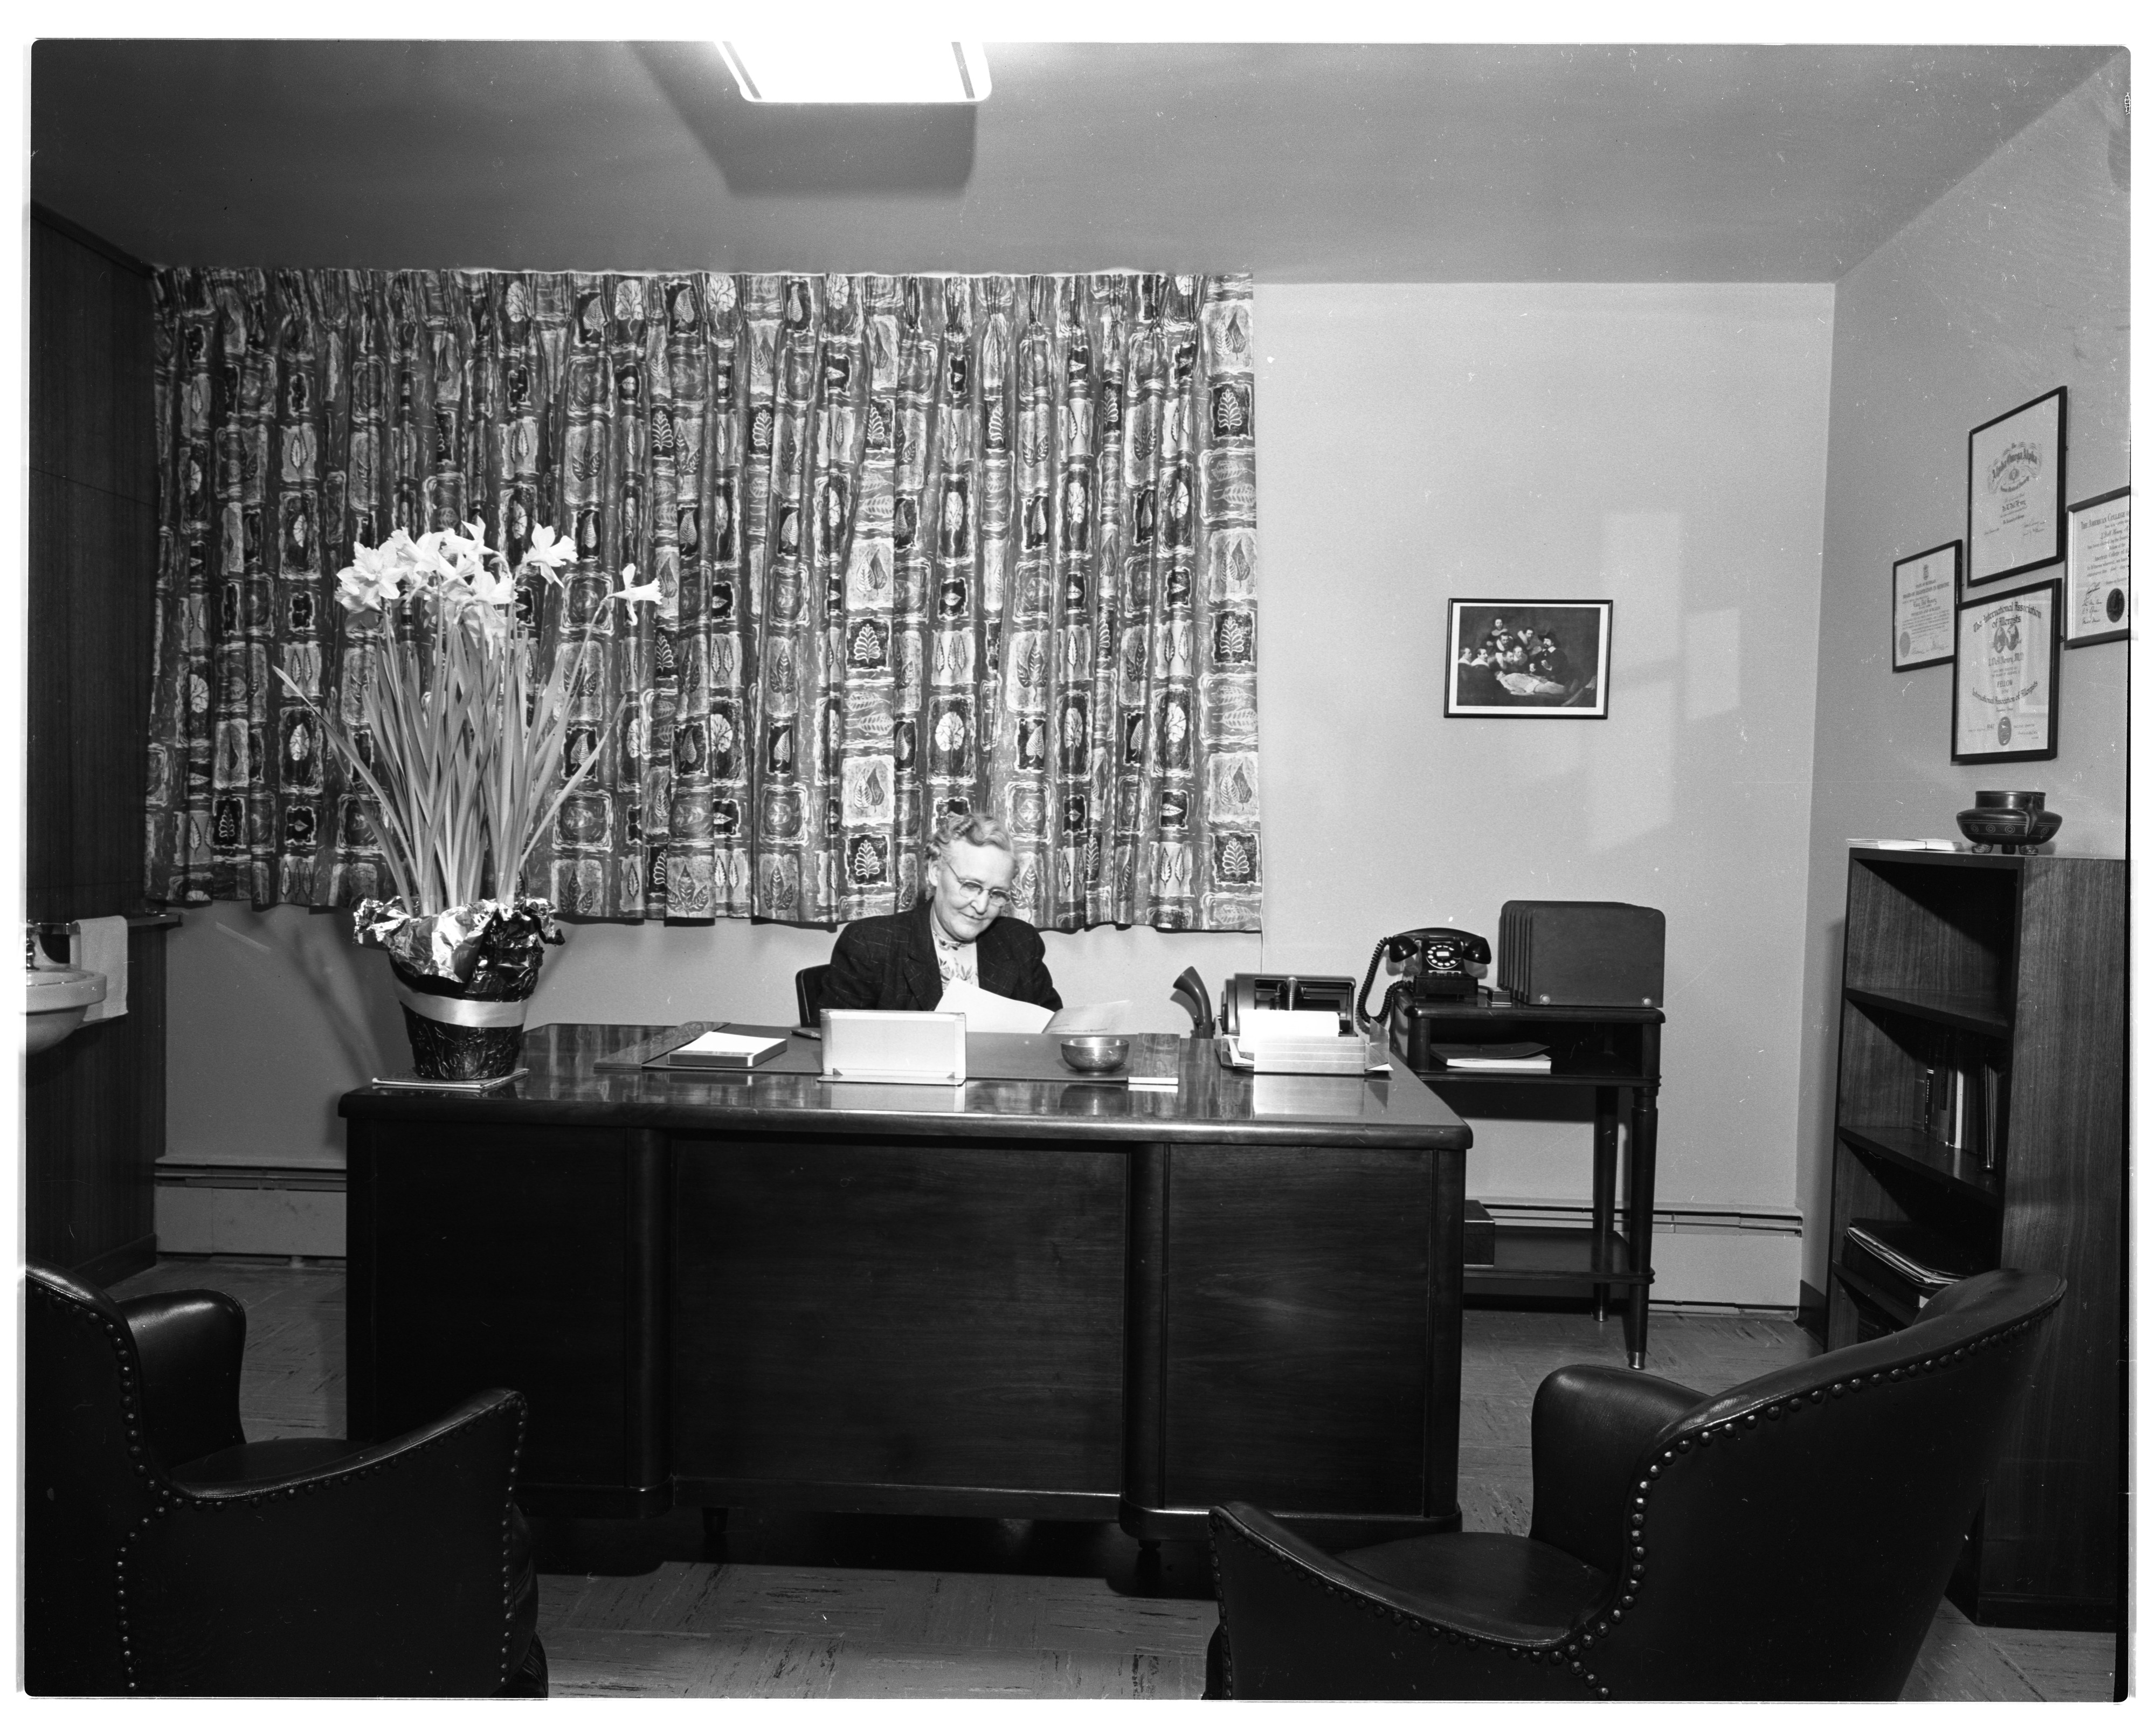 Dr. L. Dell Henry In Her Allergy Clinic Office, January 1955 image